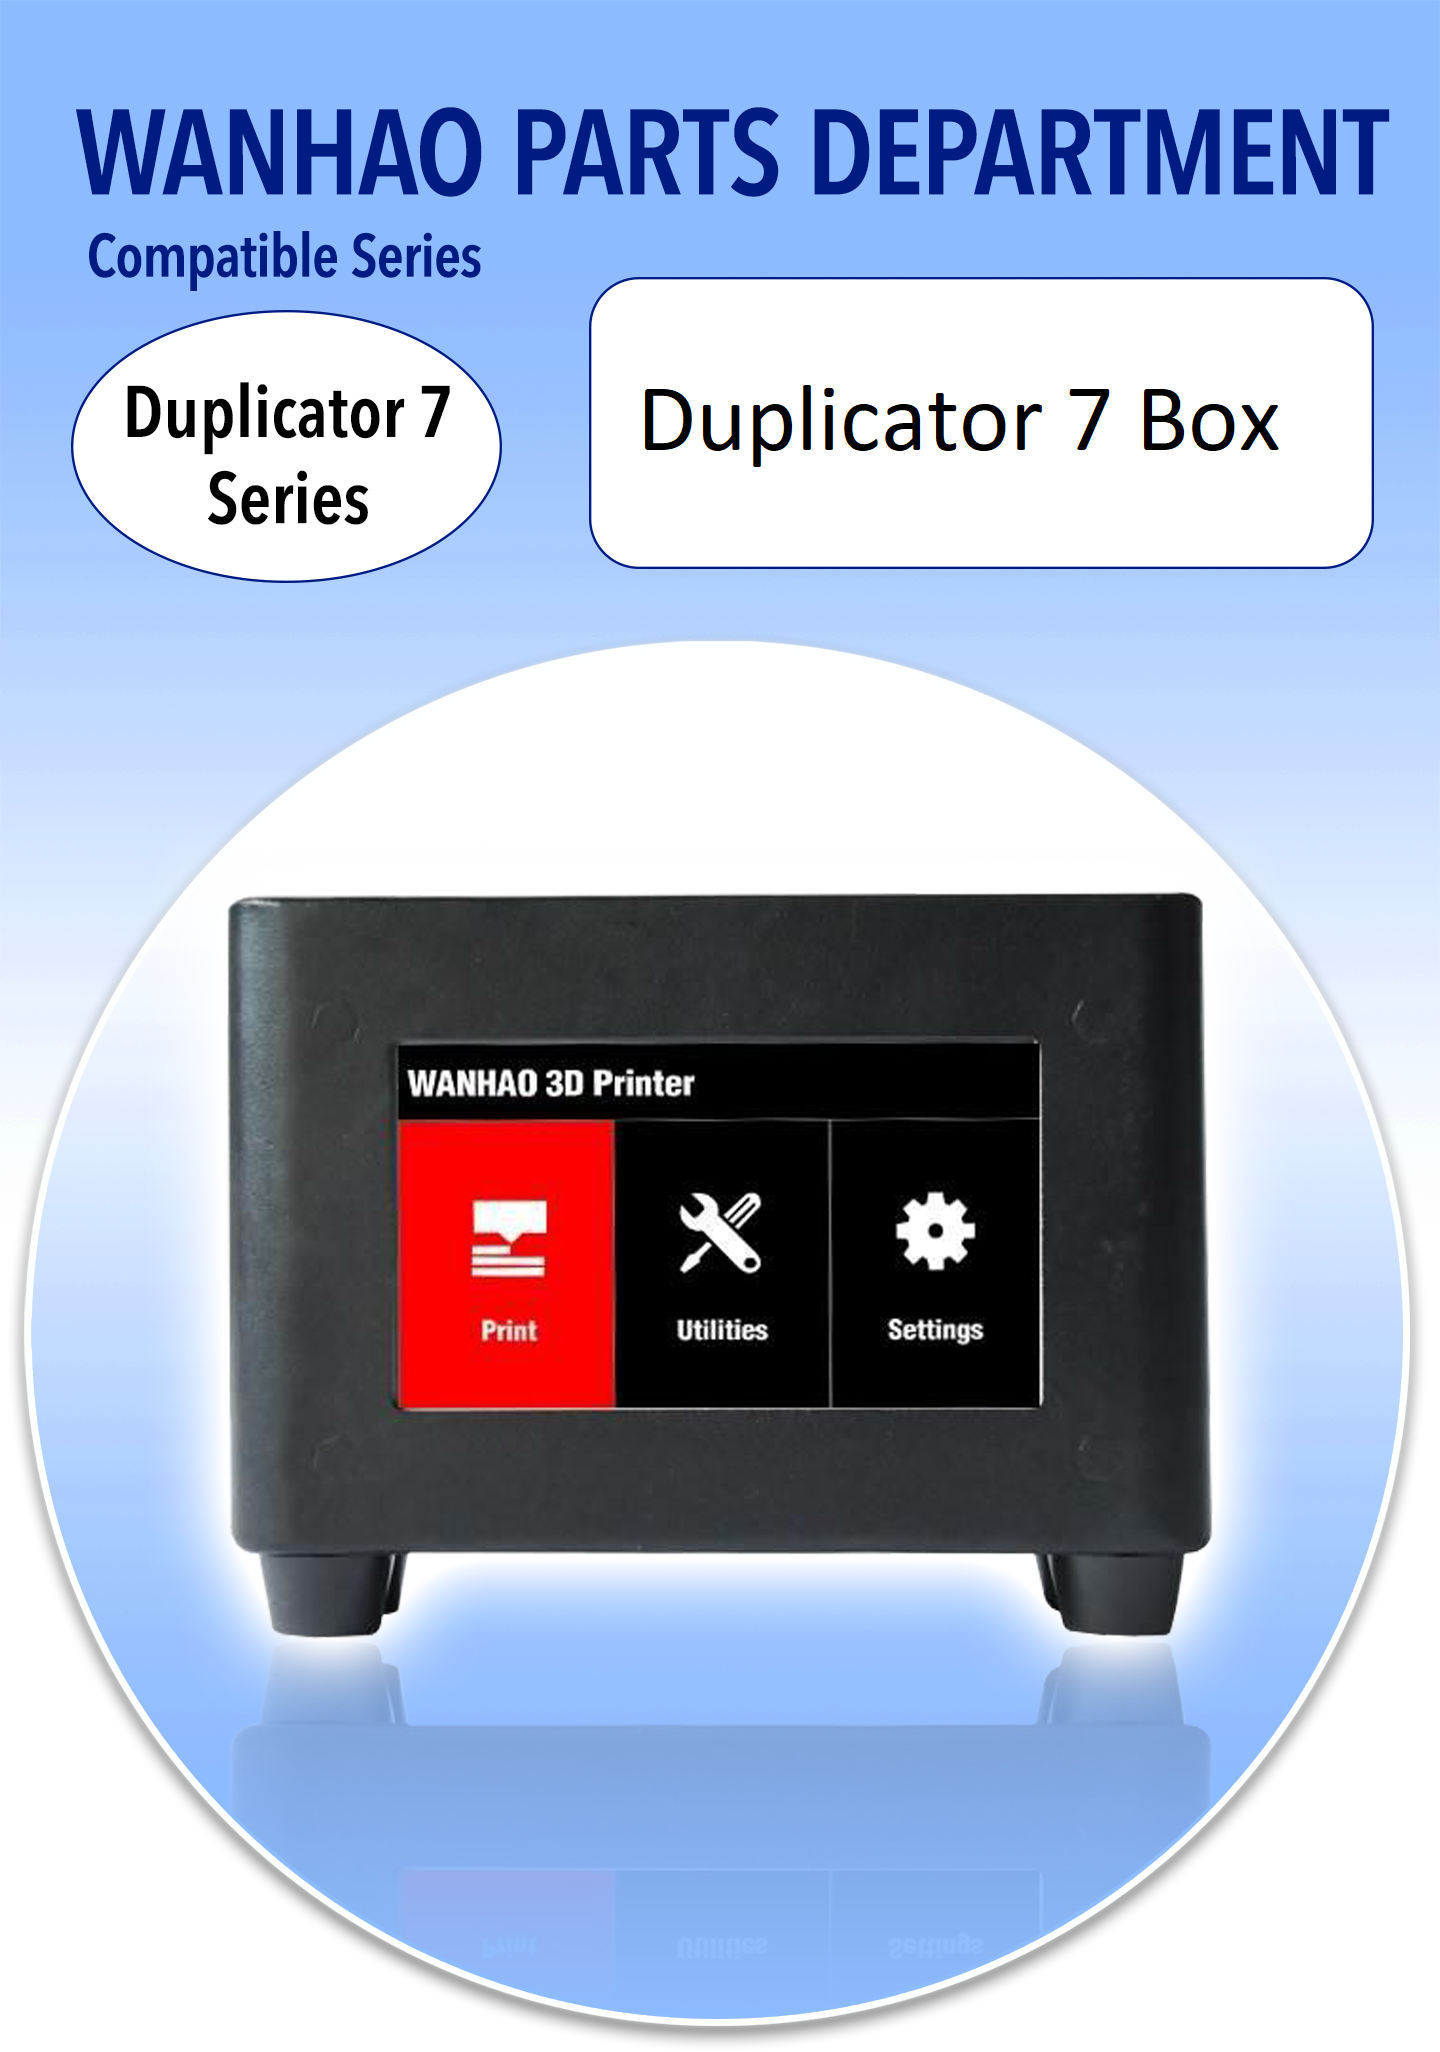 Wanhao D7 Box / TPI Touch Panel Interface - Wanhao Duplicator 7 #touchpanel